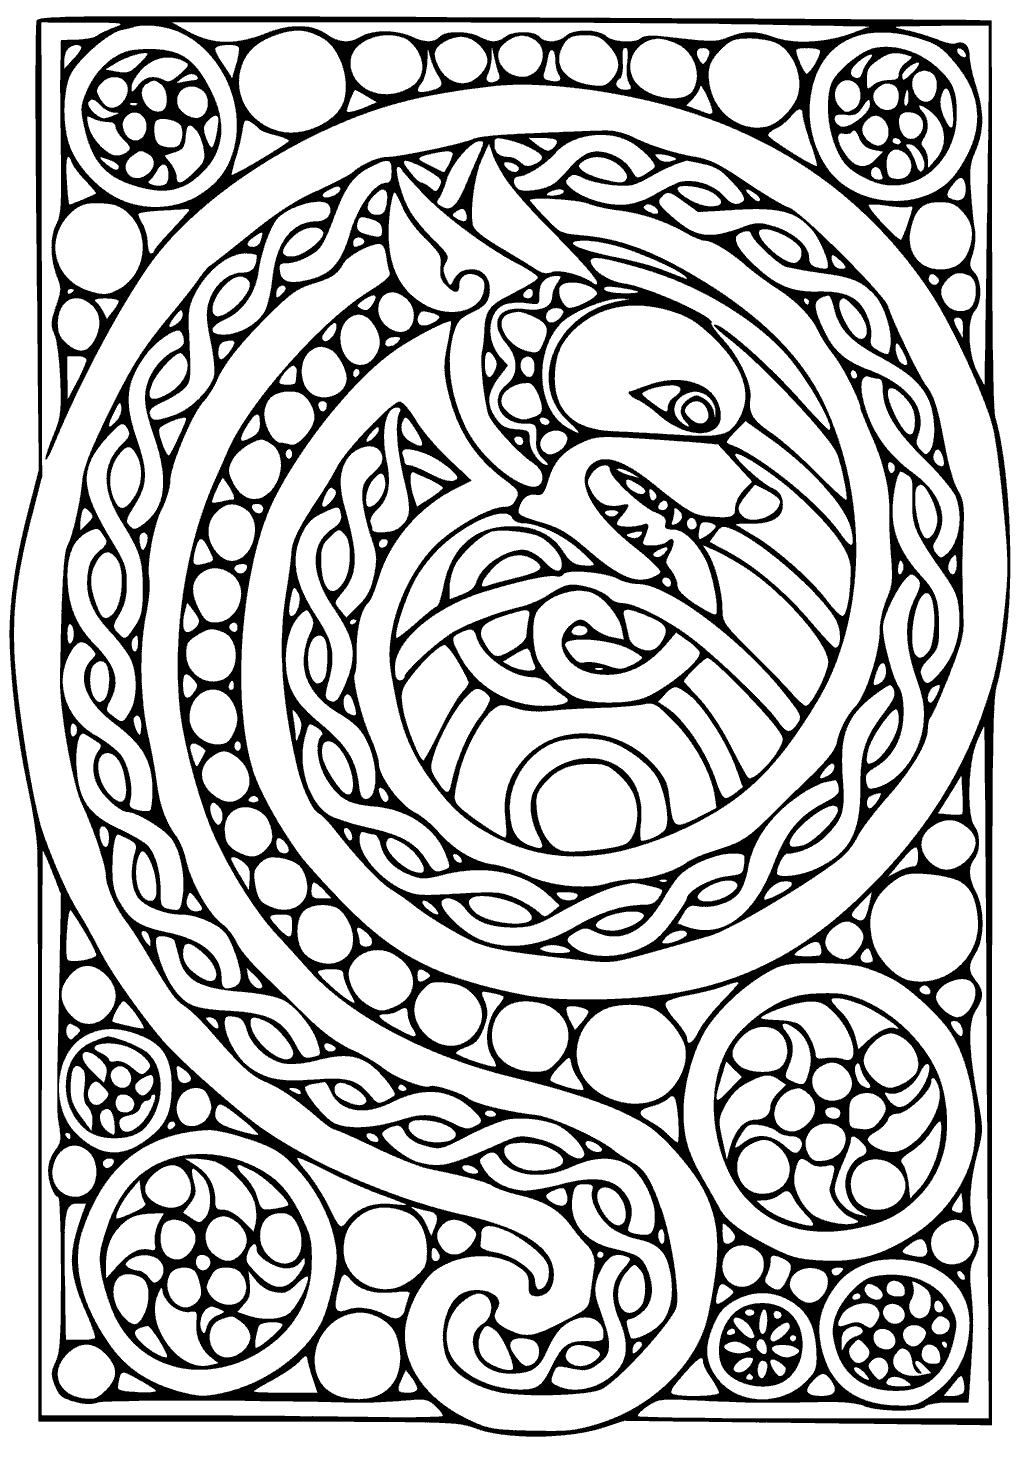 free design art coloring pages flower borders page borders free page borders coloring art design coloring free pages